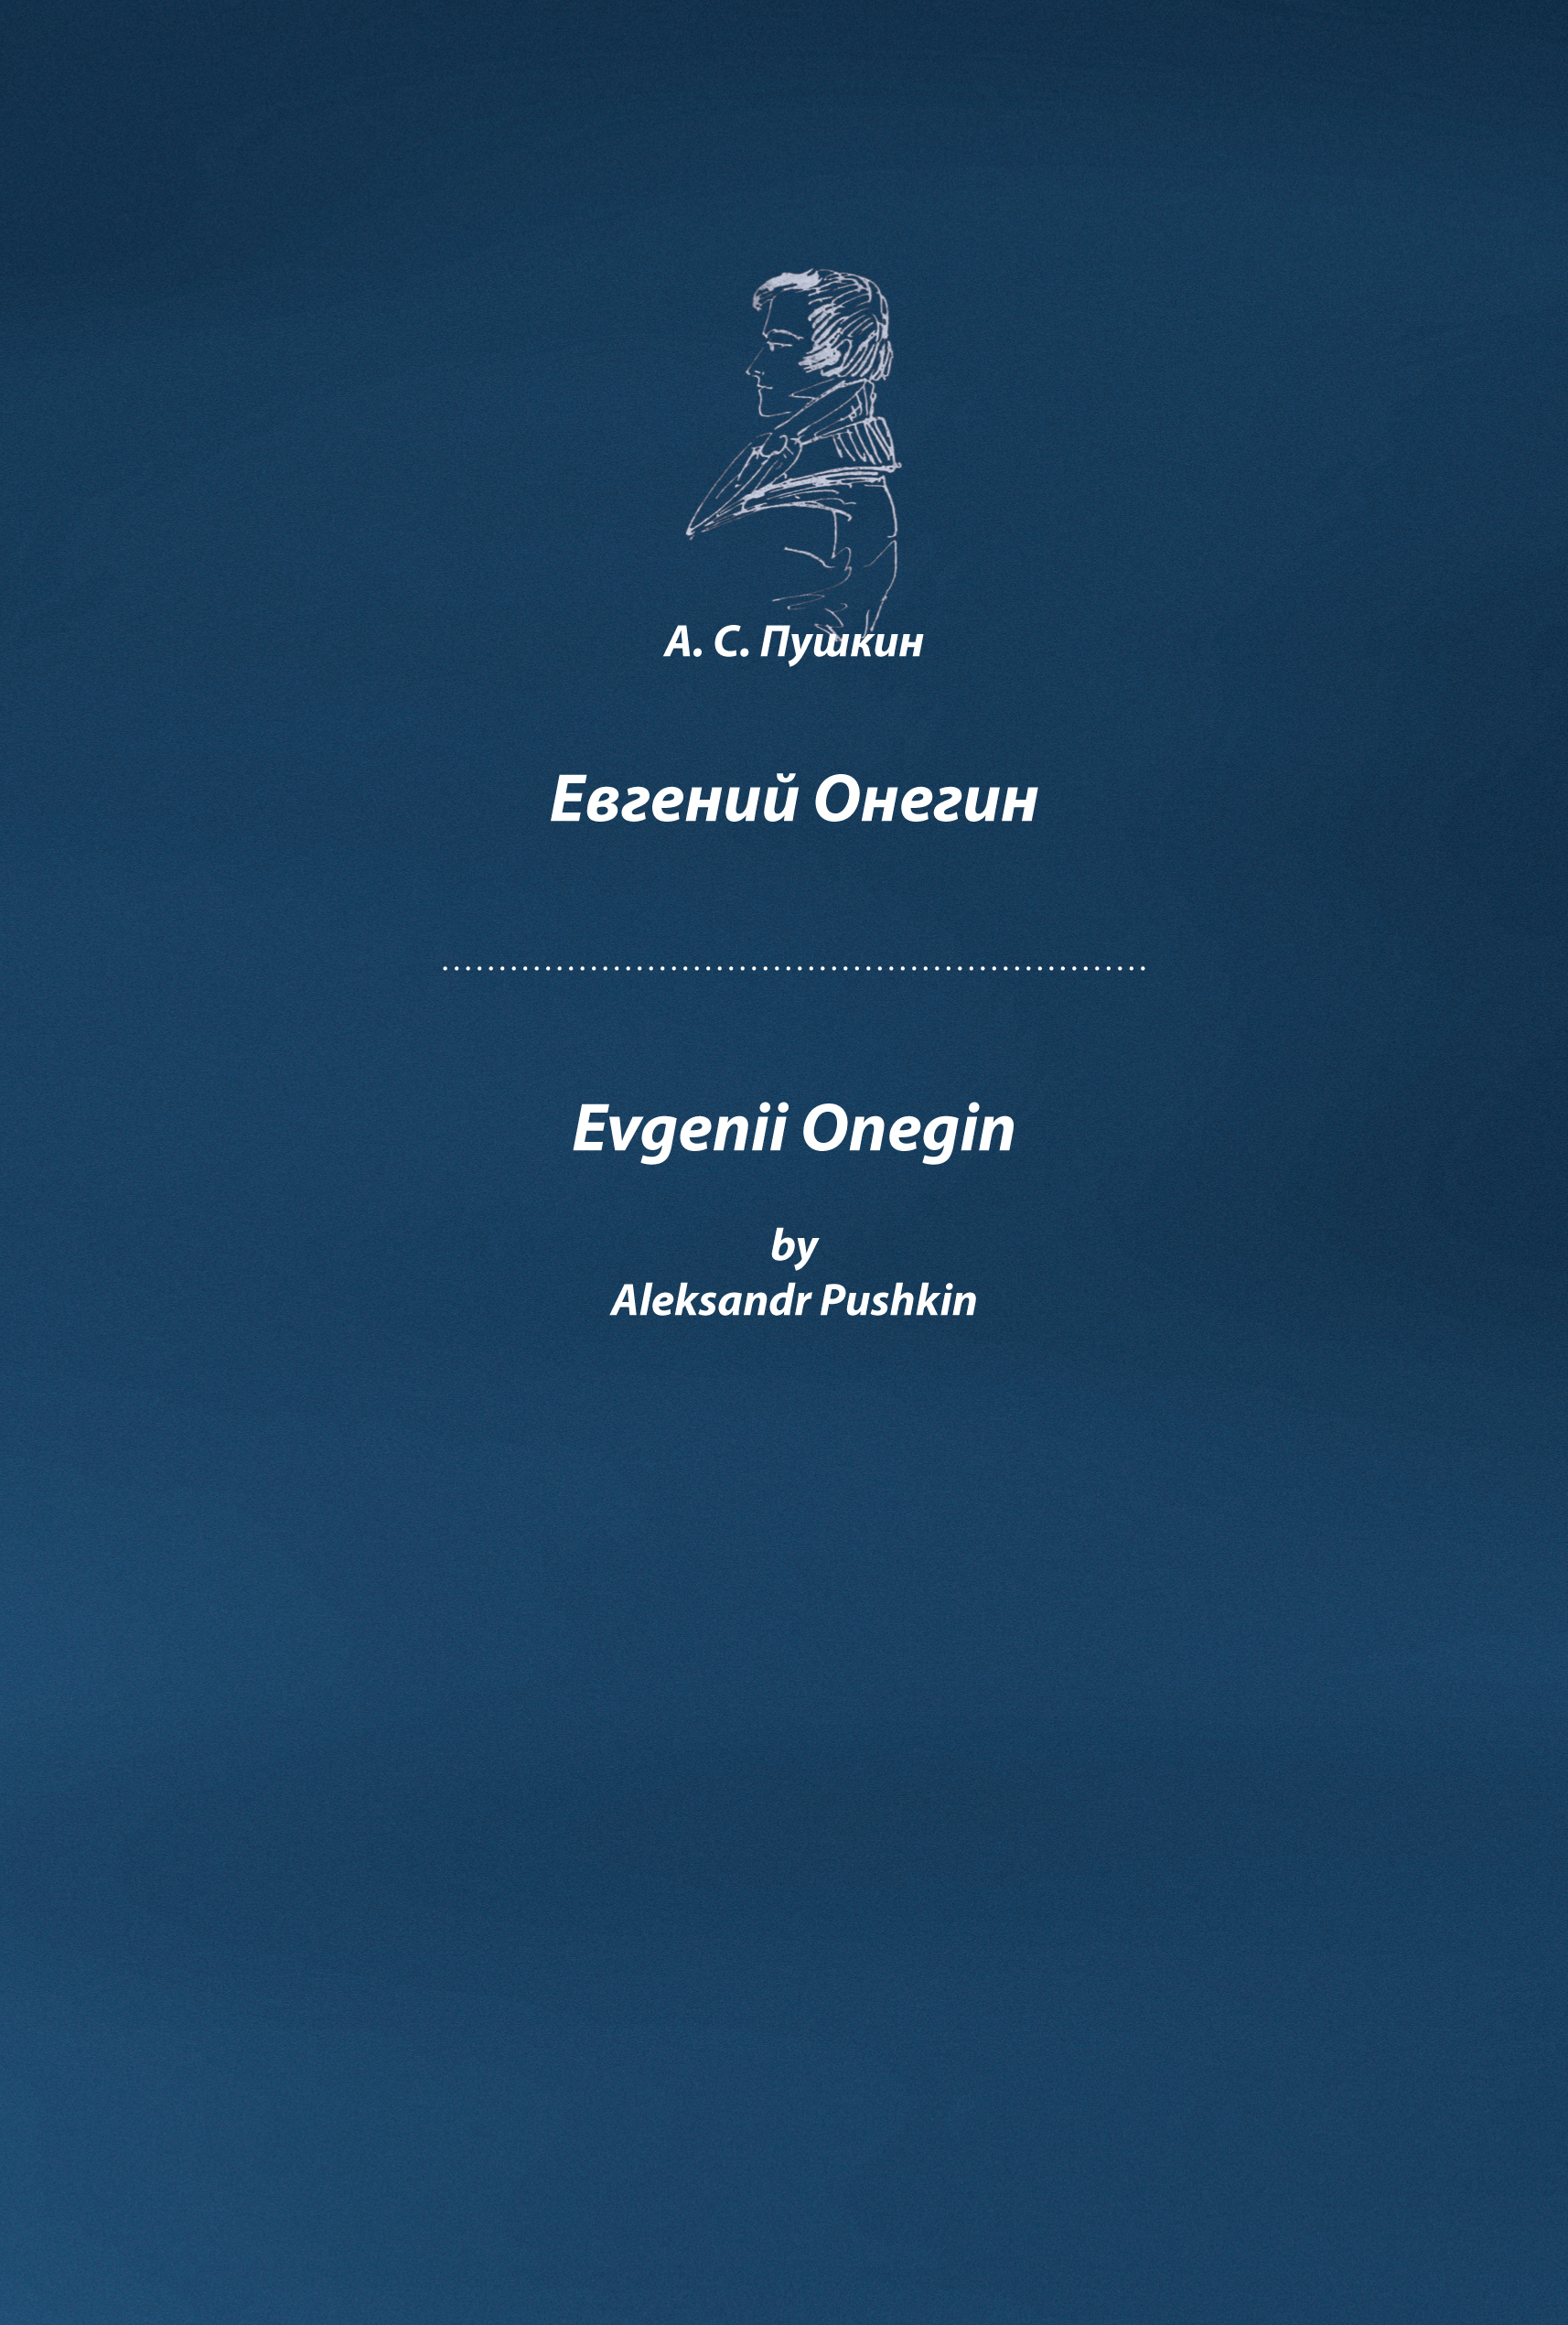 evgenii onegin evgeniy onegin